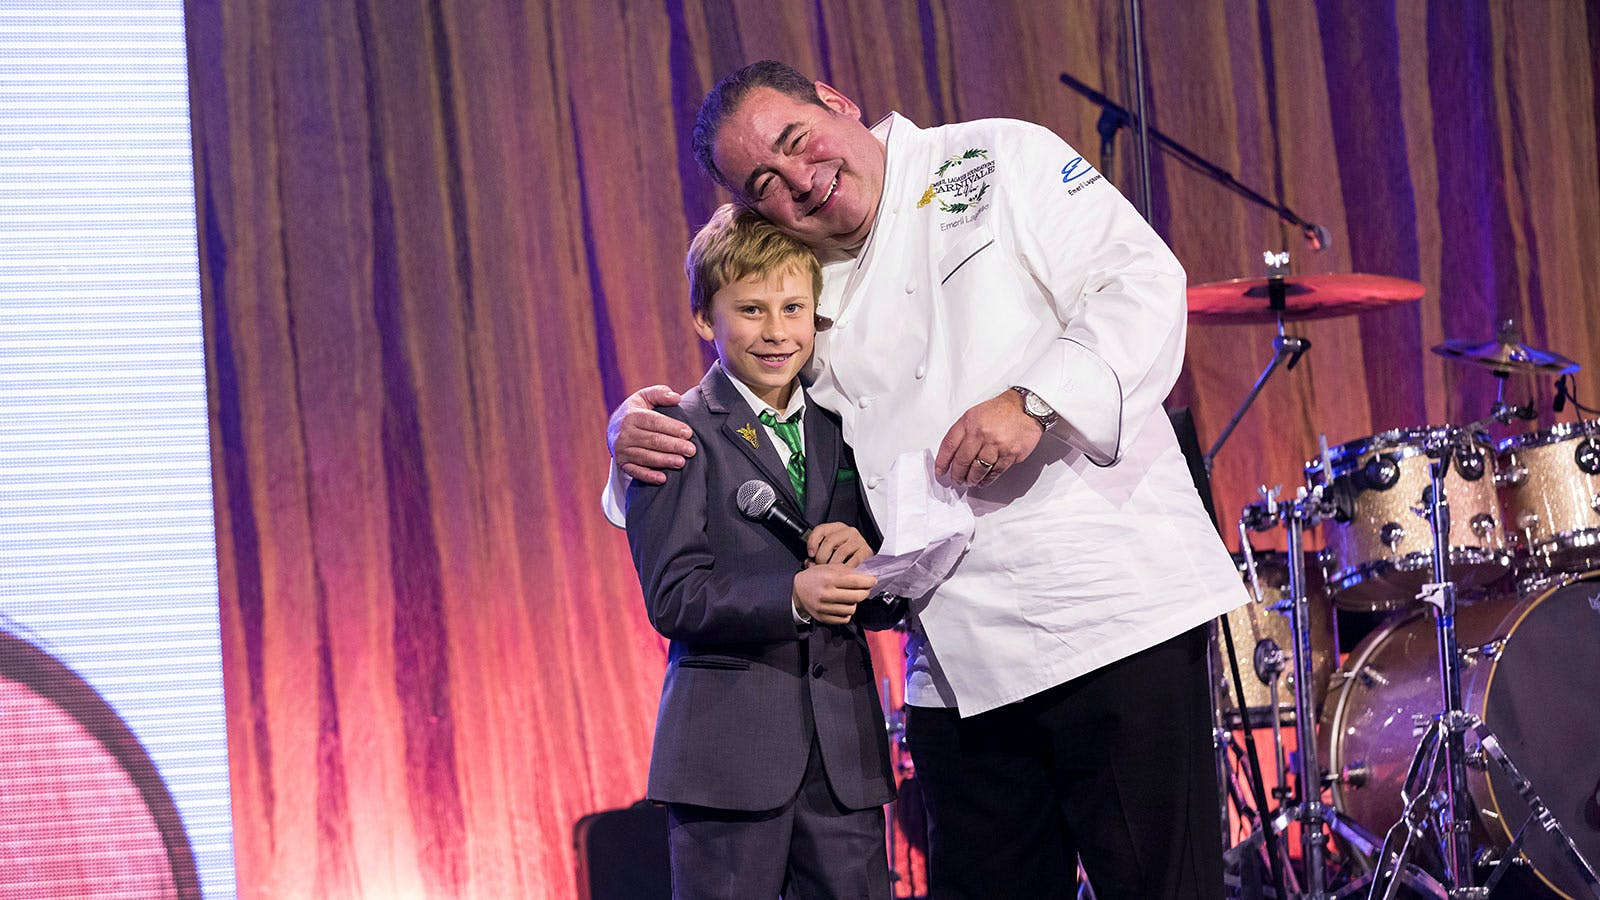 10-Year-Old Winemaker Helps Emeril Lagasse Raise $3 Million for Children's Charities